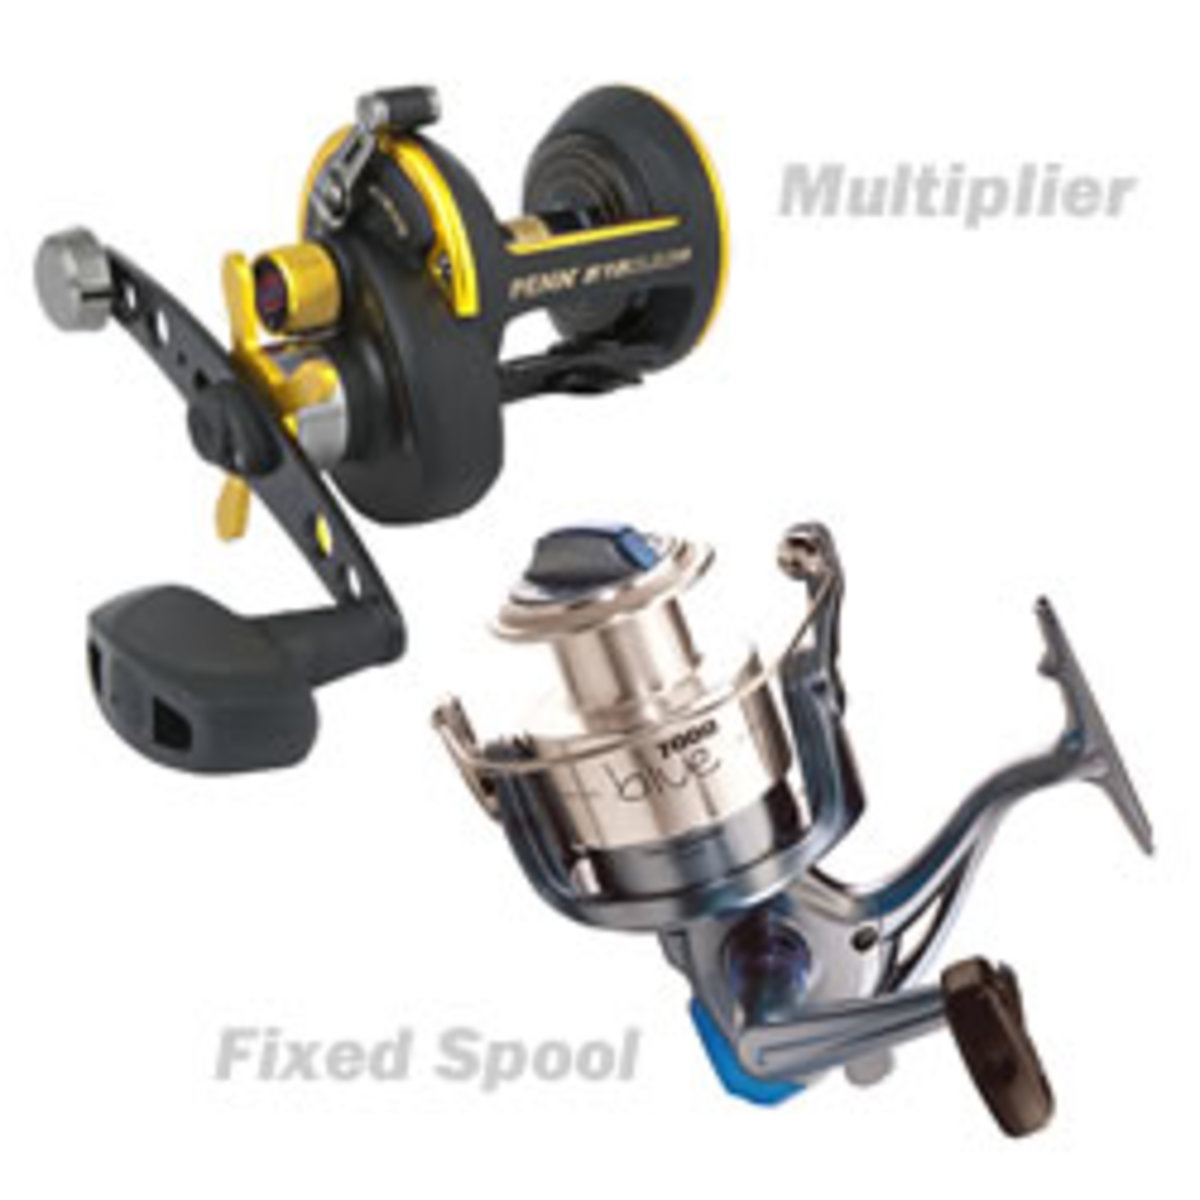 Multiplier or Fixed Spool Reel?